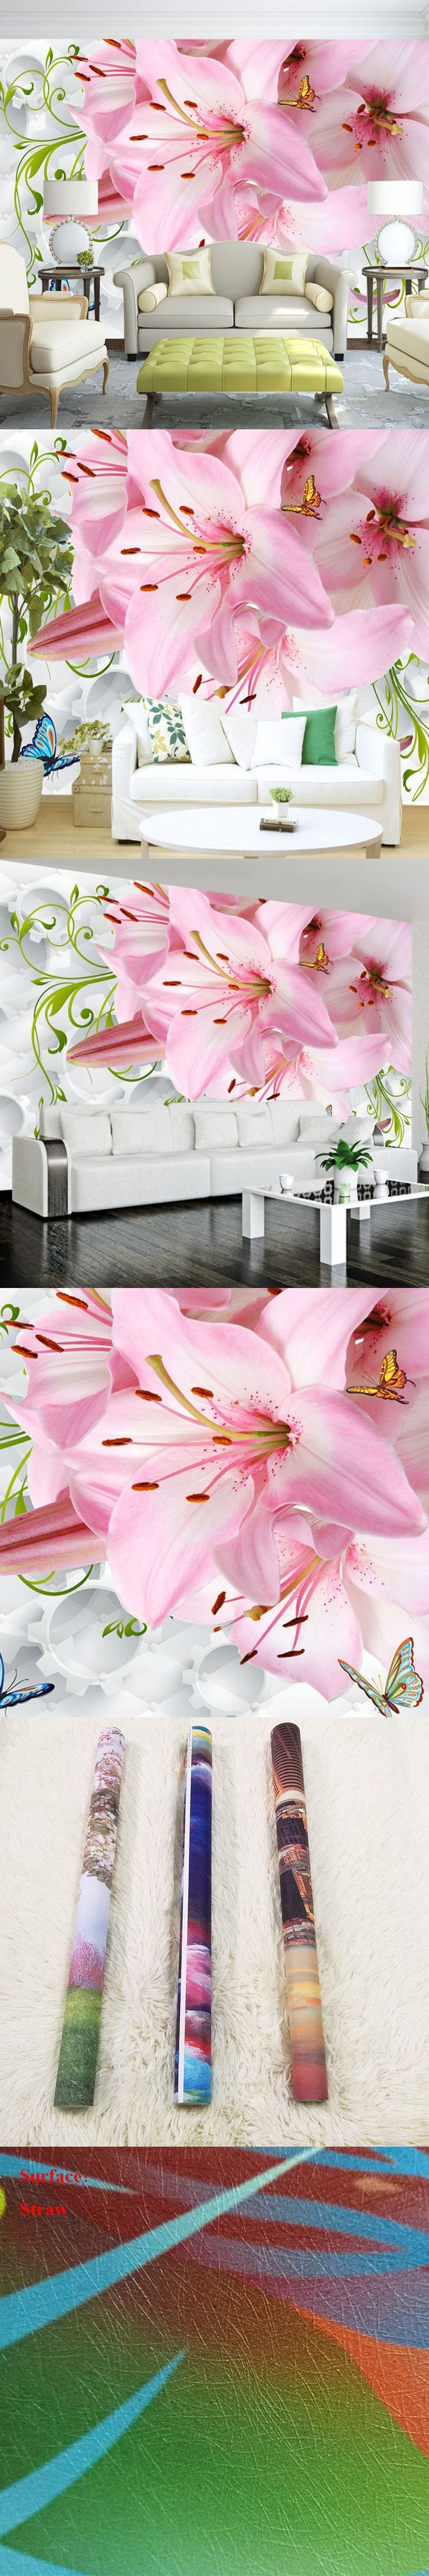 Customized 3D Large Wall Mural Beautiful Flowers Wallpaper Modern Home Decor Cozy Wall Paper Living Room Sofa Wall Background $20.65